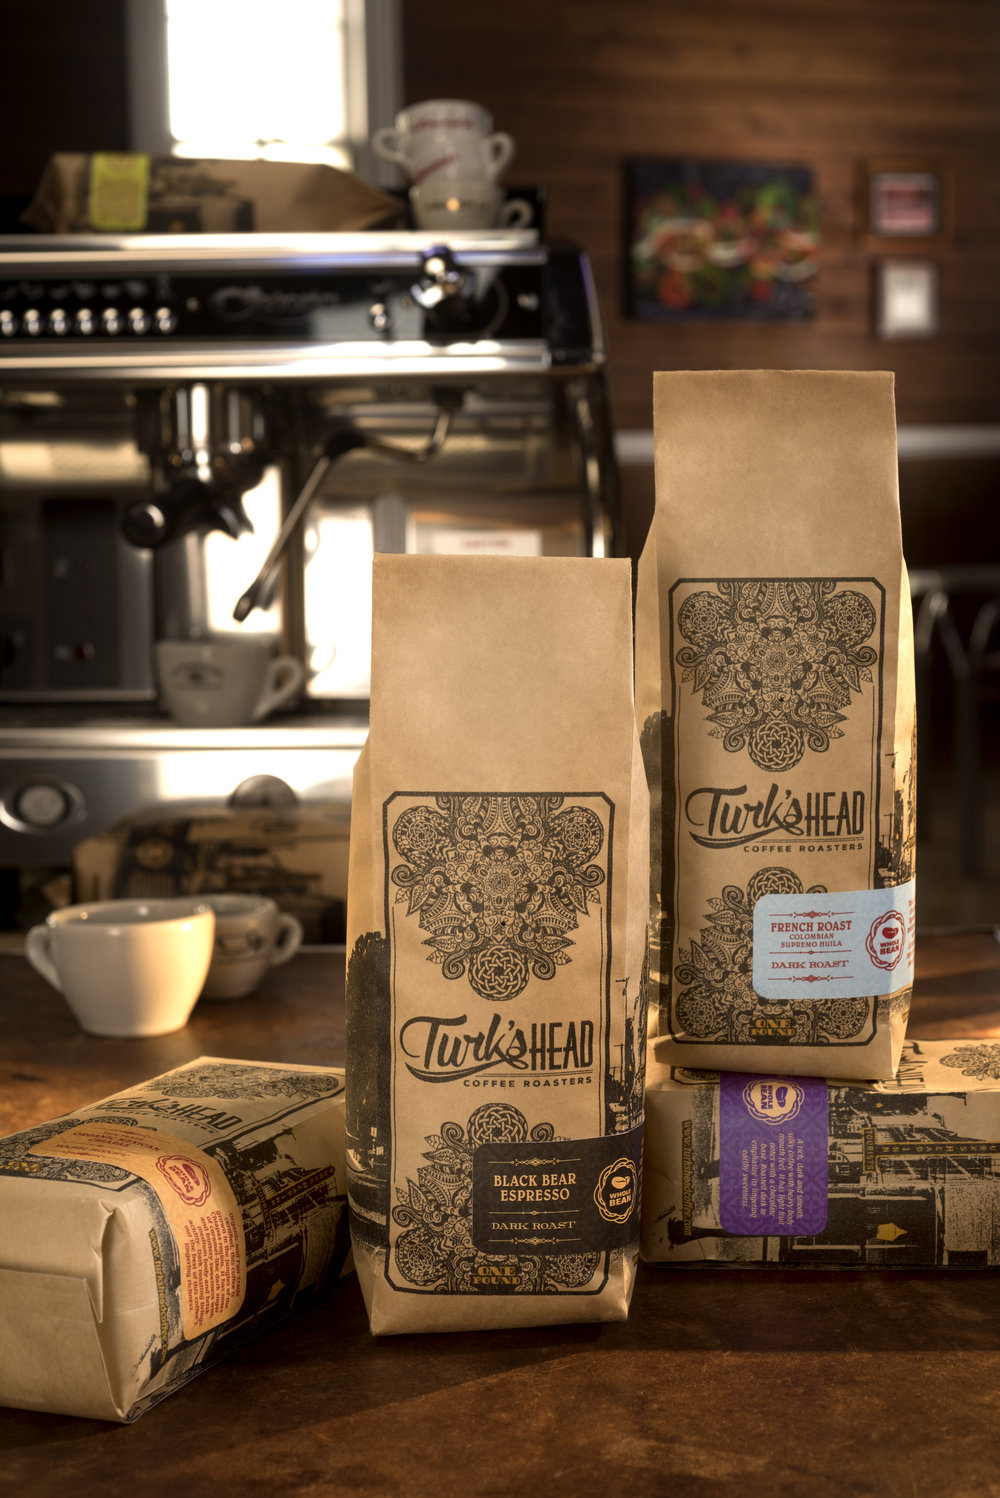 Here is a list of the establishments that you will be able to purchase the new line of Turk's Head Coffee. -  GroundCountry Bagel (Parkway Center) - West Chester, PADiFabio's Market - Media, PAE & A Candies - Intercourse, PAHighland Orchards - West Chester, PANorthbrook Marketplace - West Chester, PARoots Café - West Chester, PAShoo Mama's Shoppe - Glenmoore, PAThom's Jerky - Exton, PATredici - Wayne, PAYori's Bakery - West Chester, PAZook's Roadside Stand - Gordonville, PAWhole BeanBagel Bistro - West Chester, PACountry Bagel (Parkway Center) - West Chester, PAFenn's - West Chester, PAHarvest Market - Hockessin, DEJanssen's Market - Greenville, DEJava's Brewin - Limerick, PAKimberton Whole Foods - Multiple locationsTredici - Wayne, PATriple Fresh Market - East Fallowfield, PA